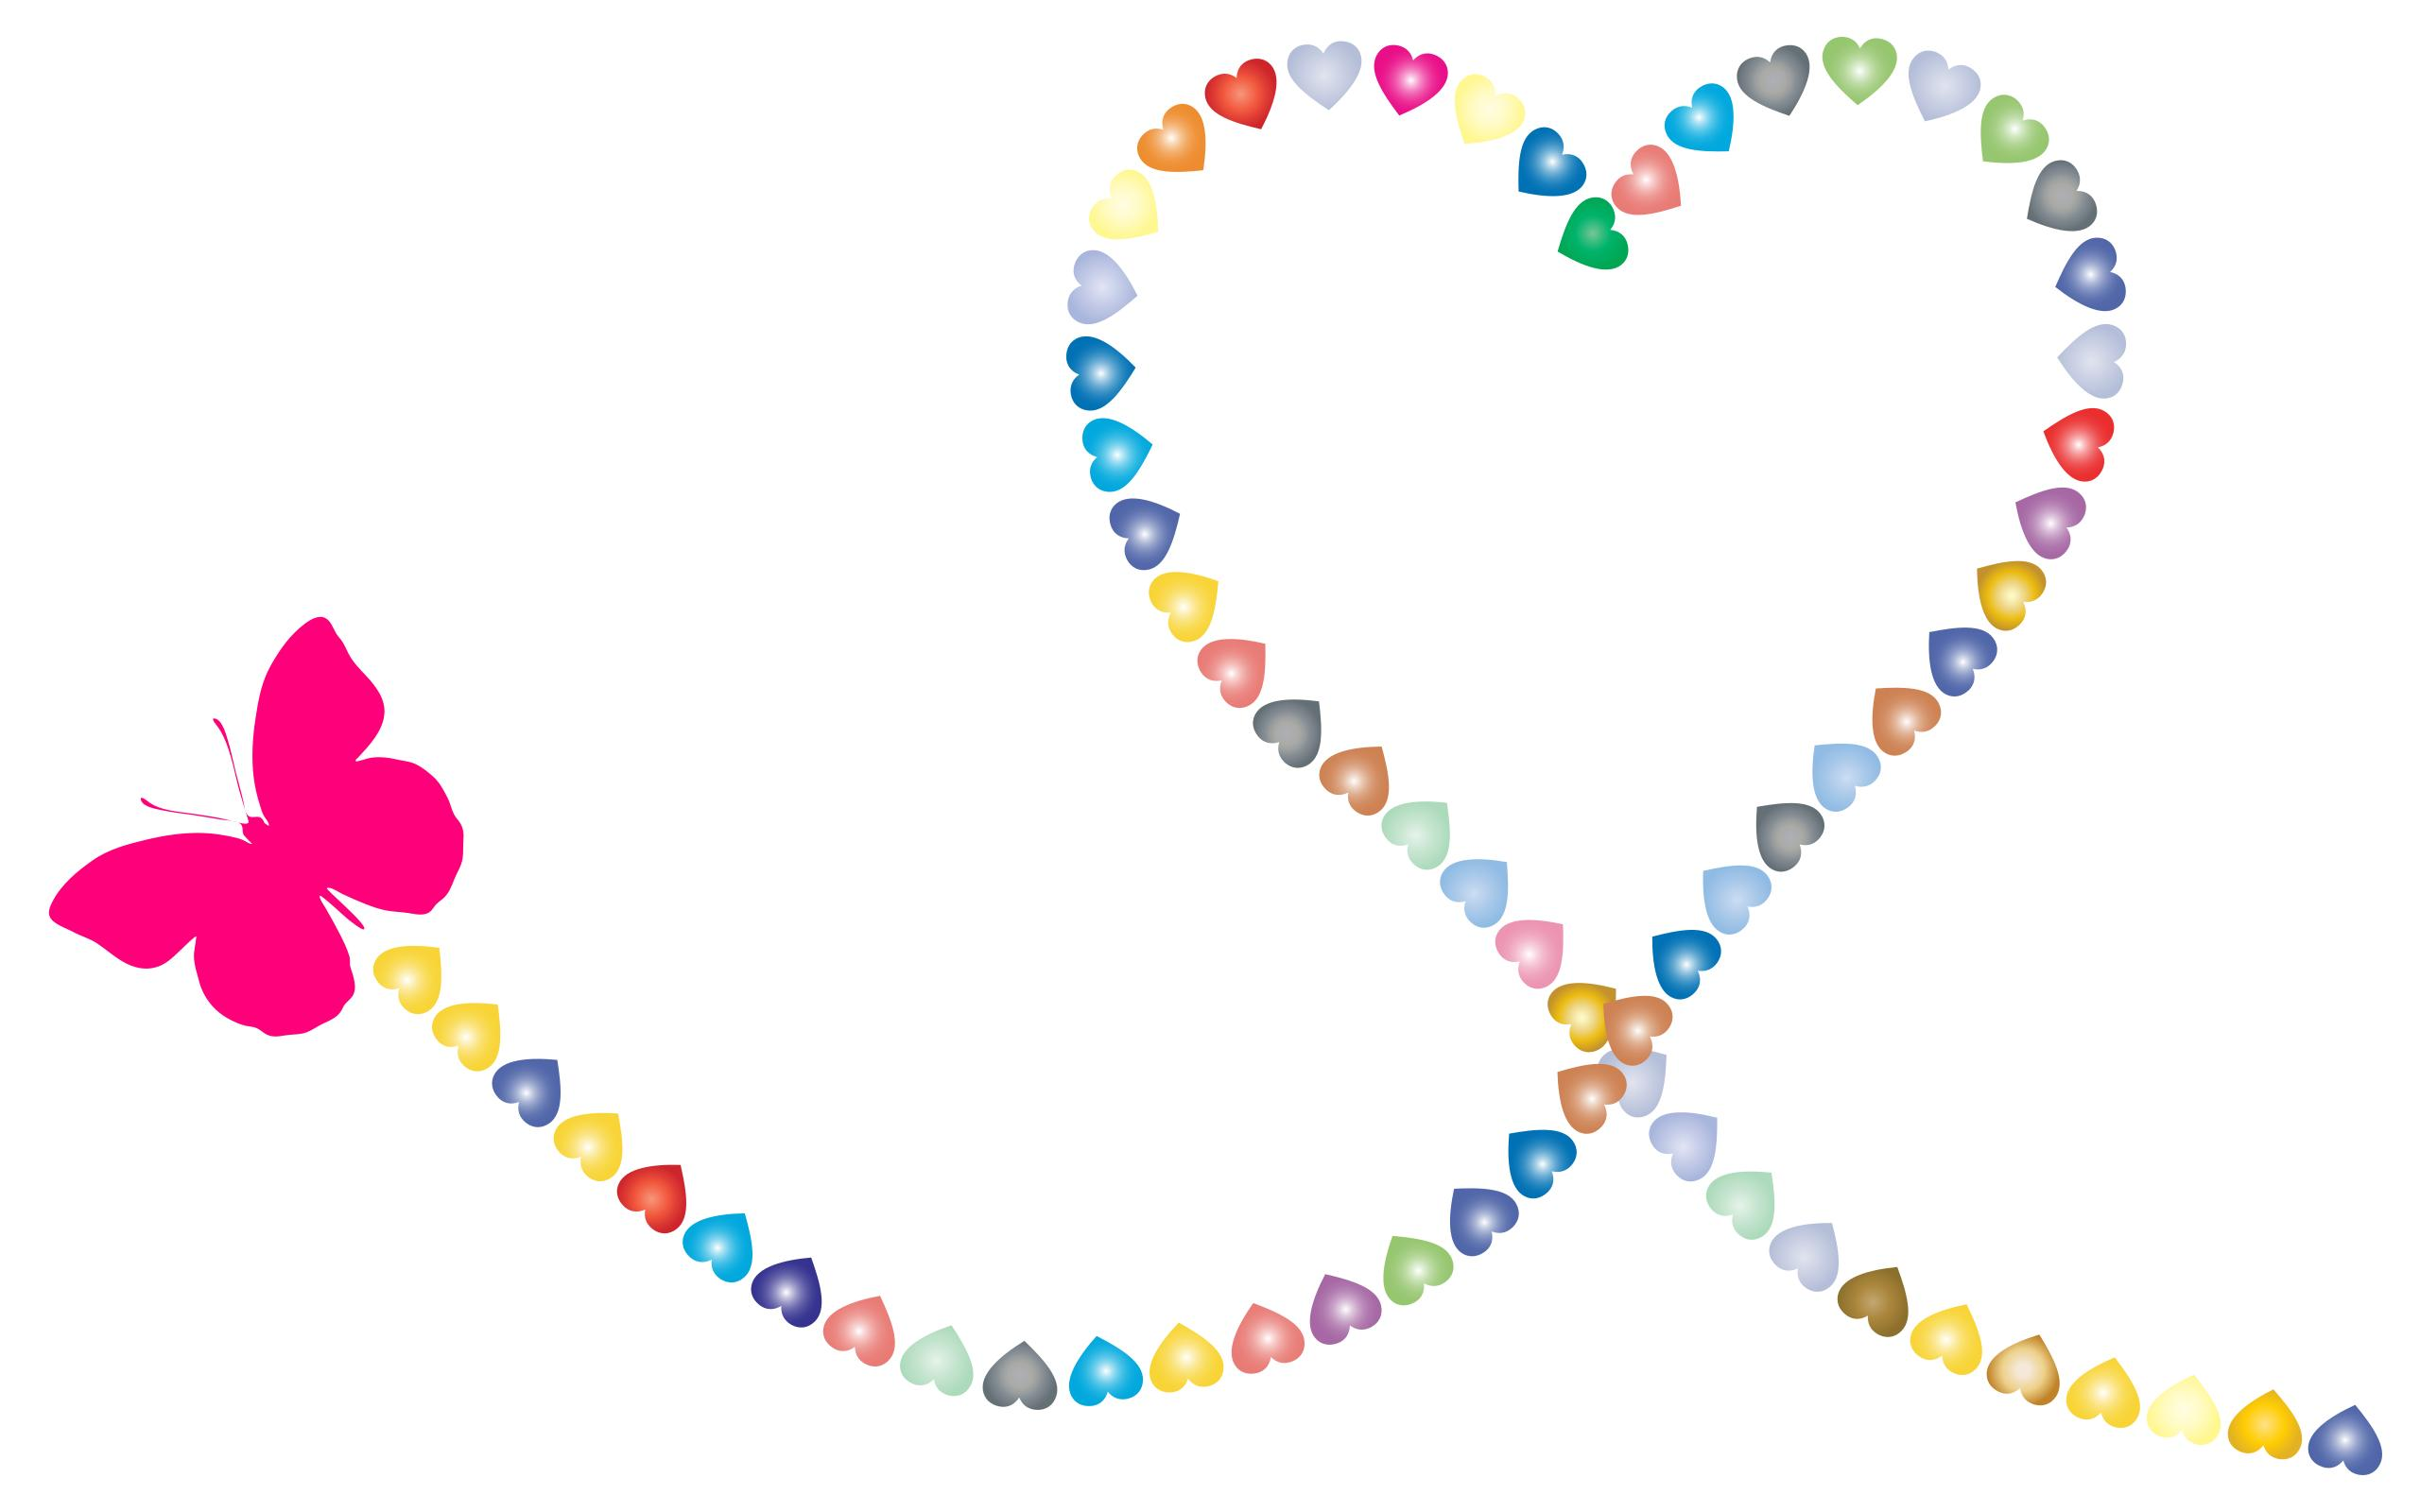 2 clipart path. Butterfly hearts trail design